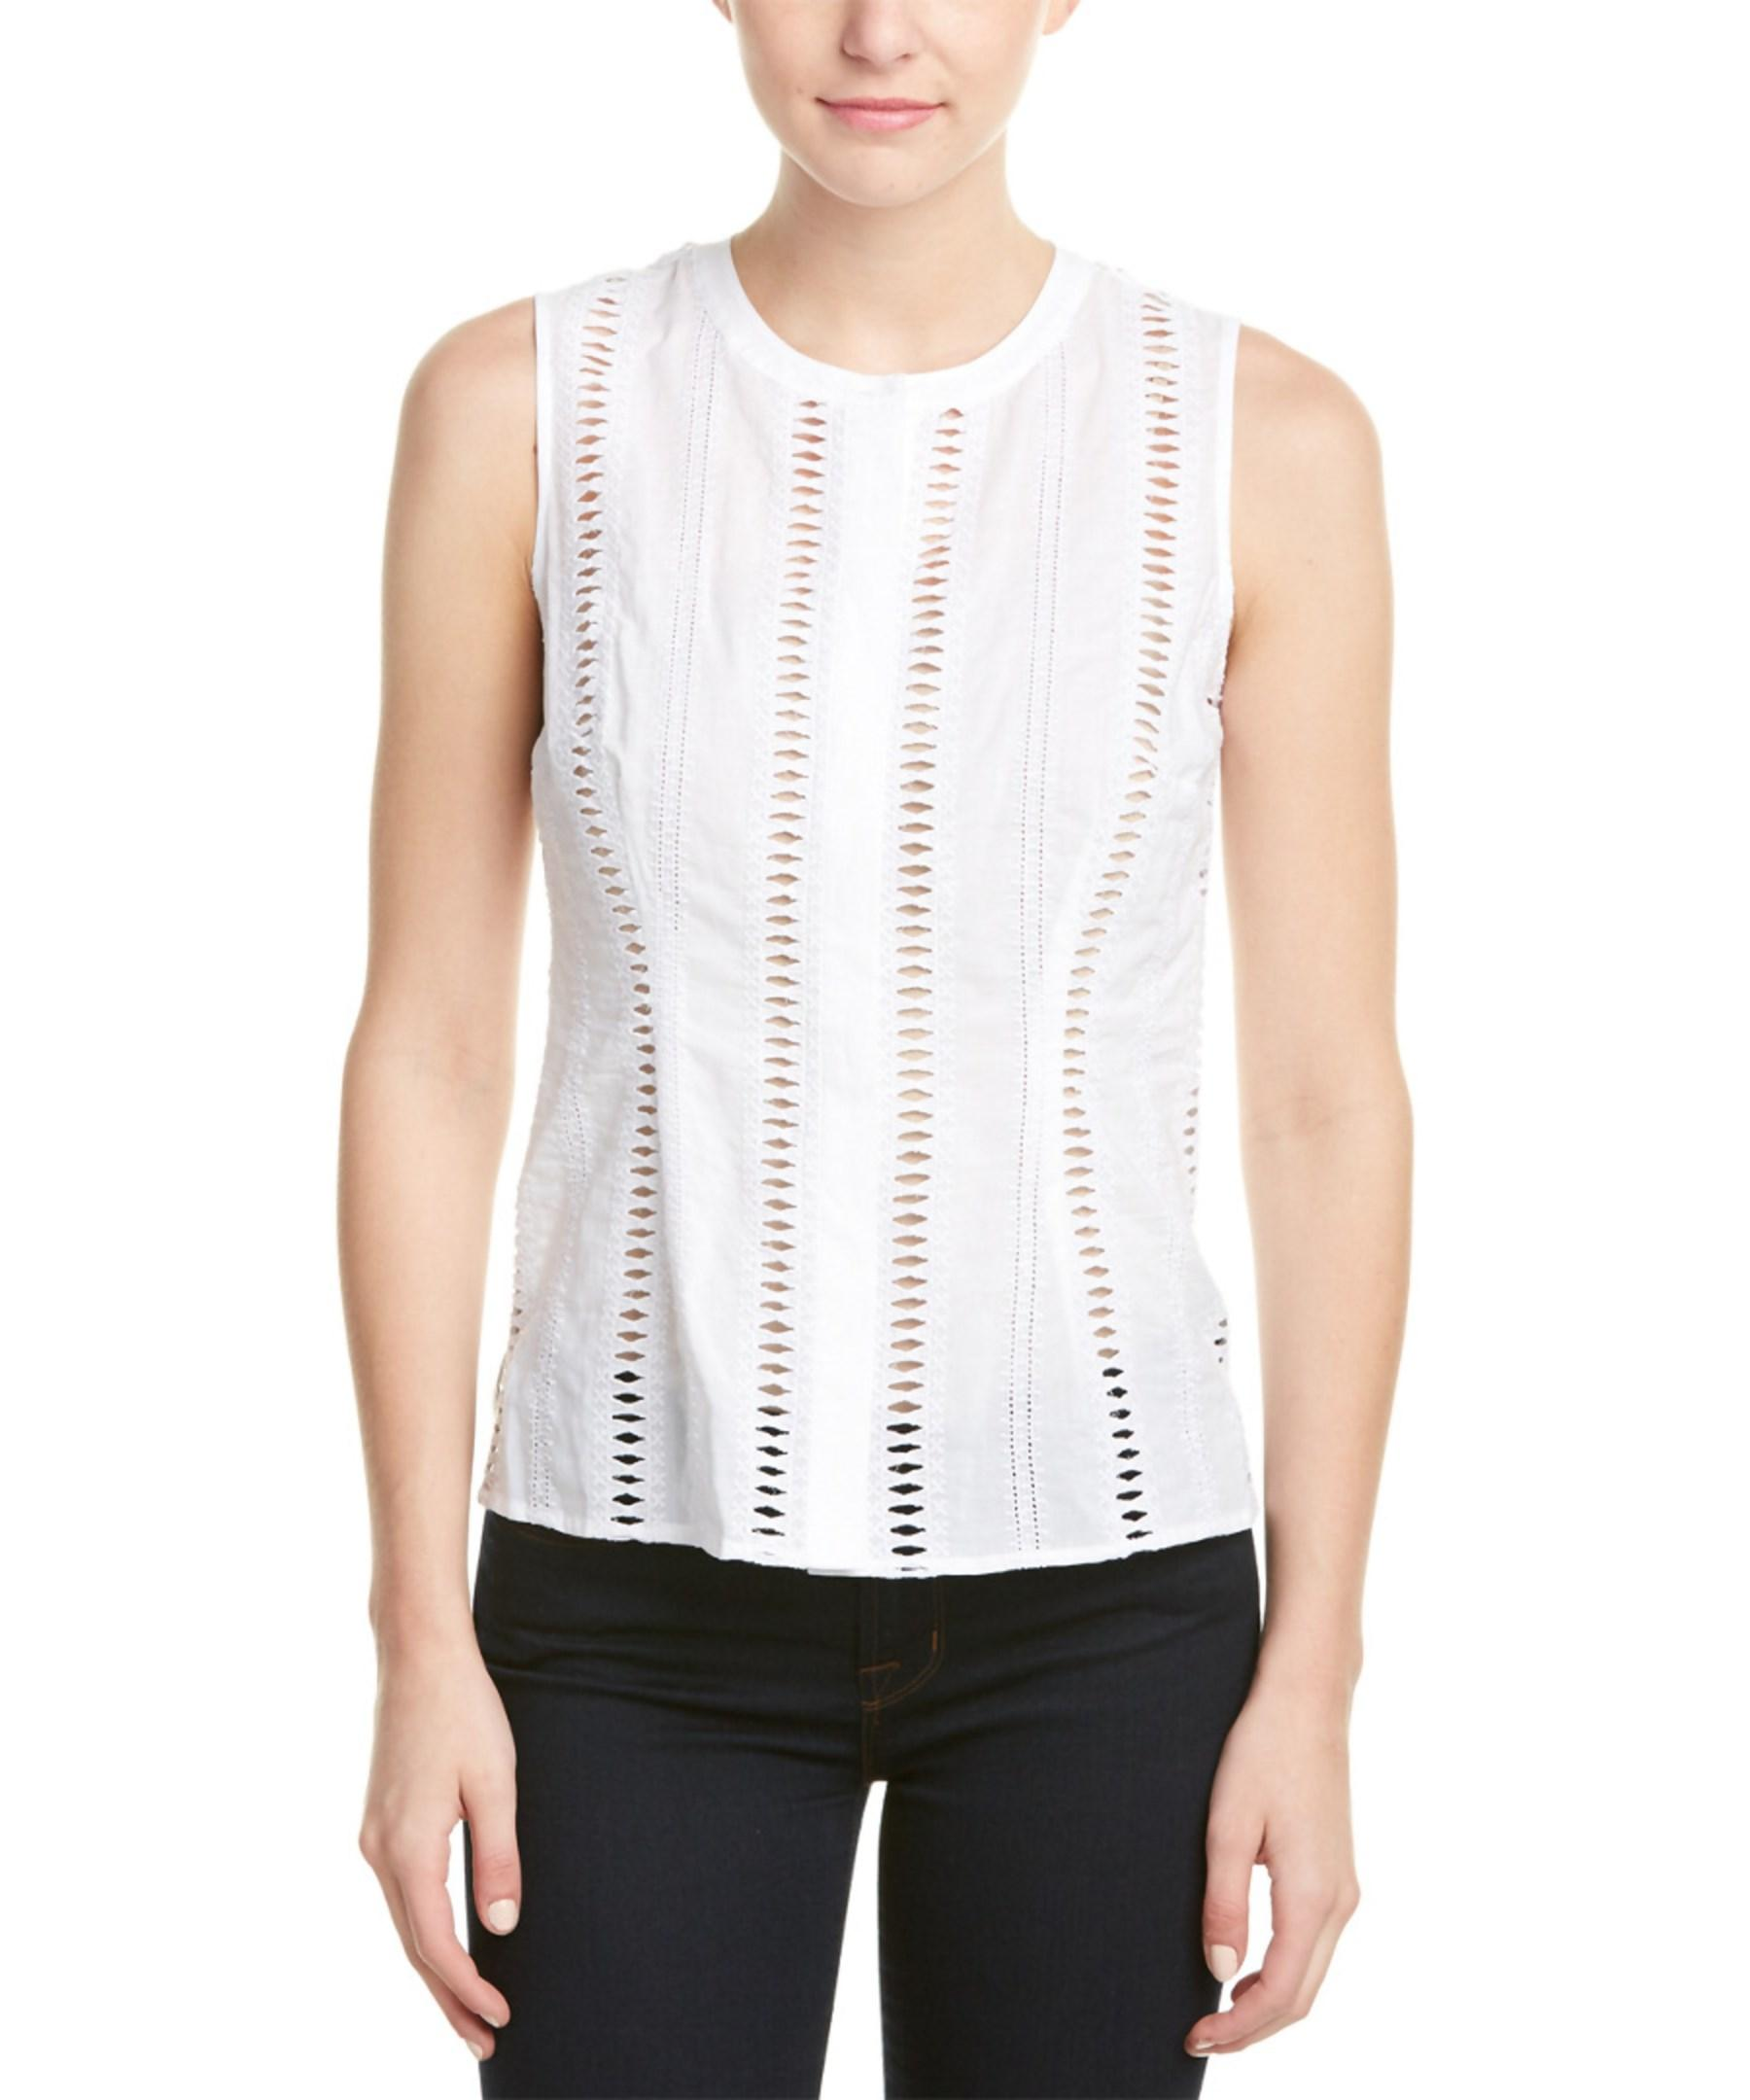 laundry by shelli segal laundry by shelli segal top in white lyst 12096